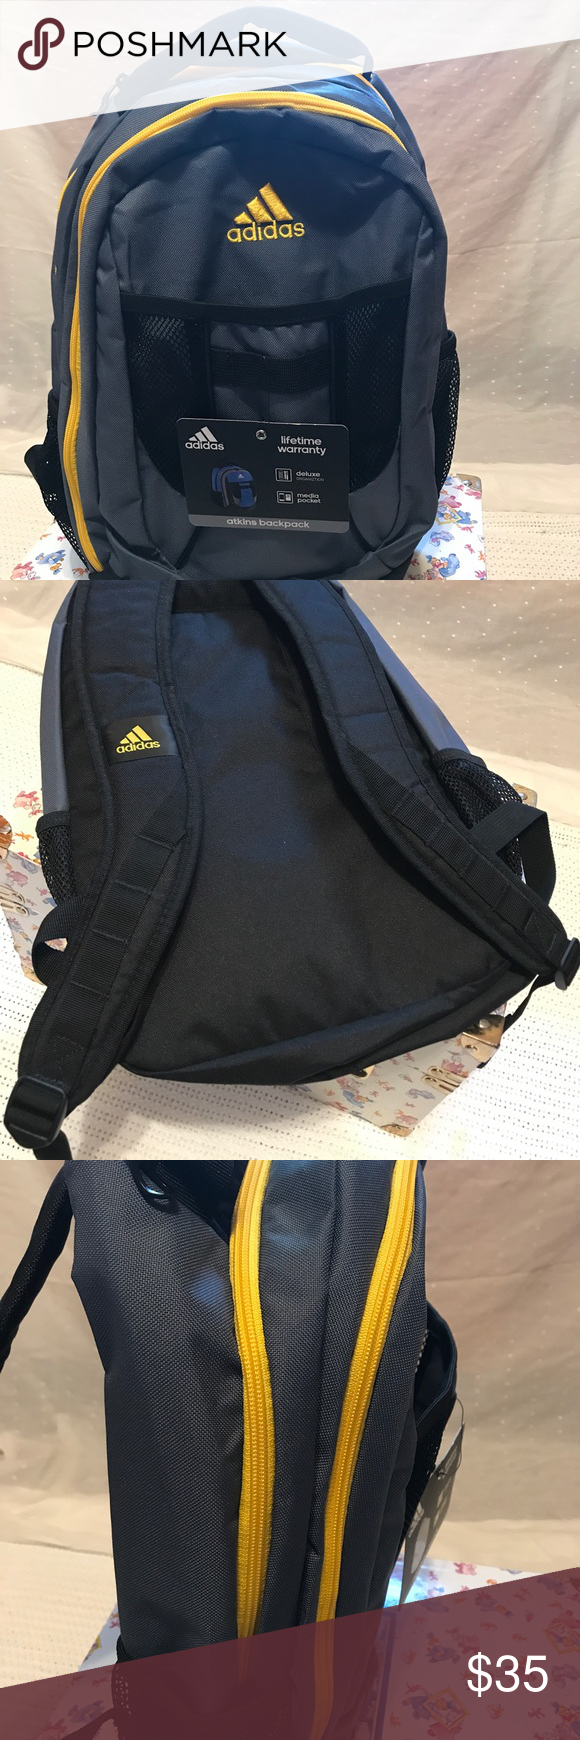 f584a1f6c7d0 Adidas backpack Atkins backpack Colored black yellow  gray good condition   still with tags  feel free to send me an offer adidas Accessories Bags